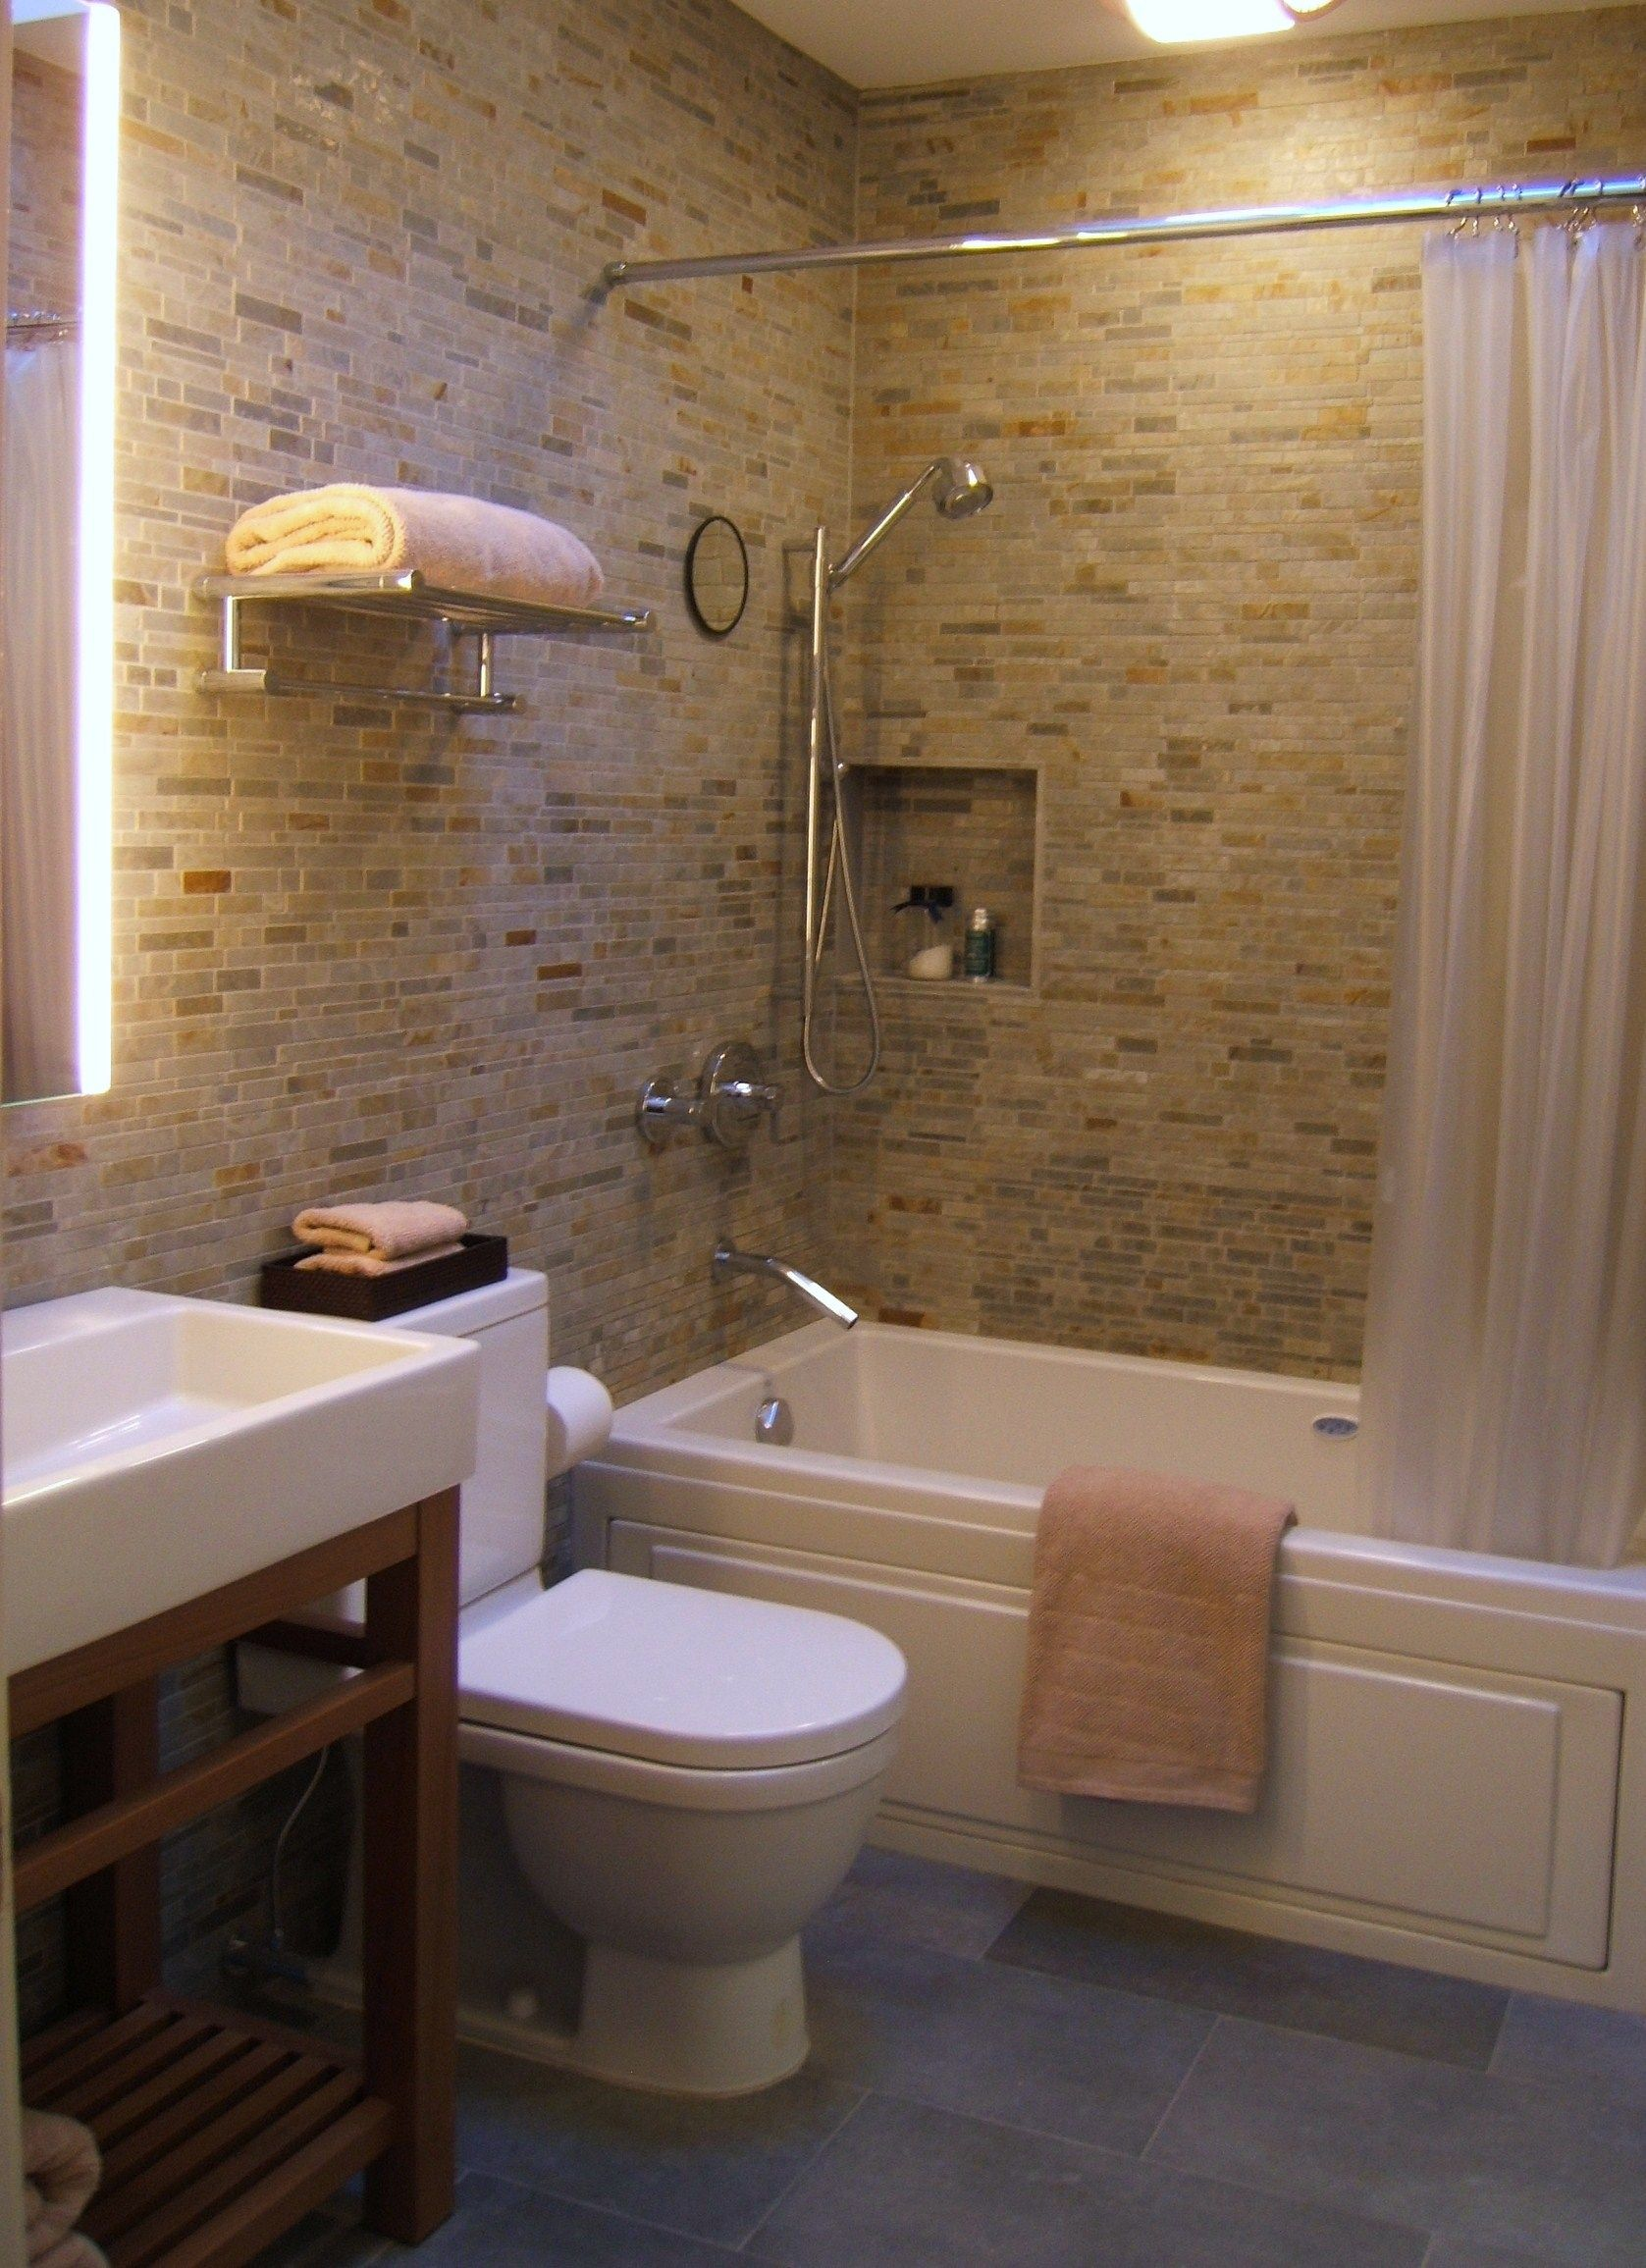 Small bathroom designs south africa small bath for Bathroom design small